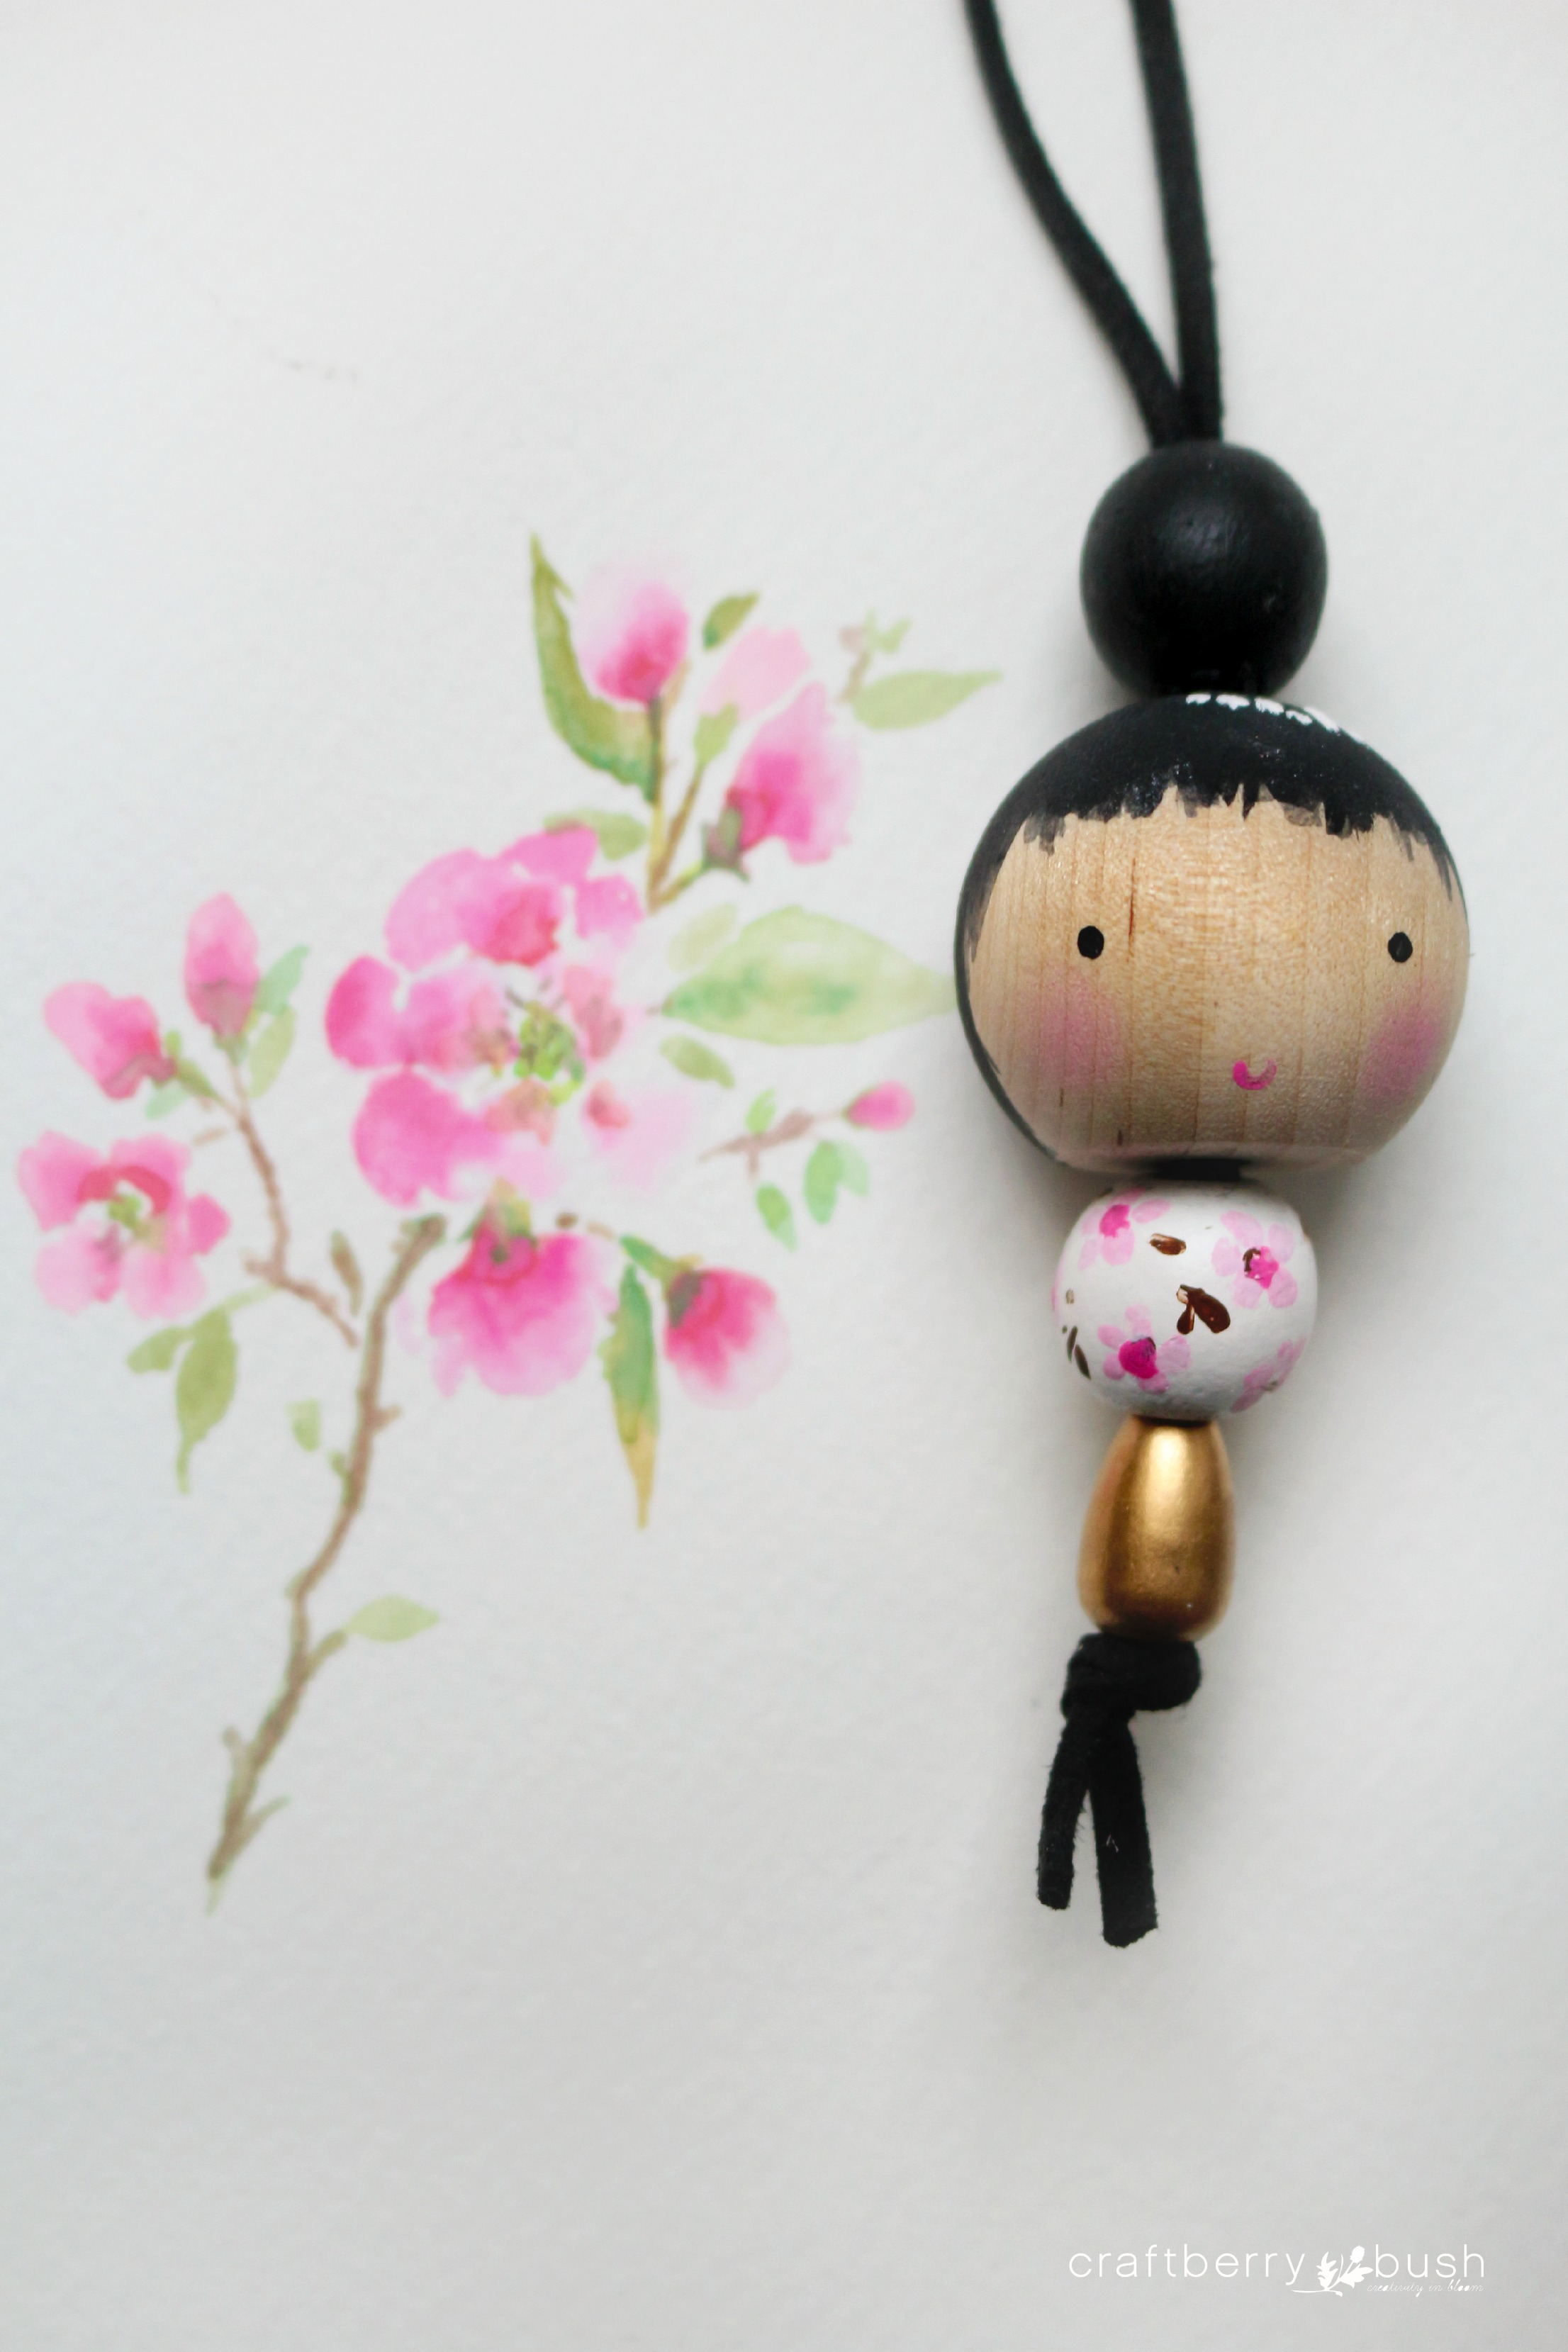 woodenbeaddollnecklacecraftberrybush3